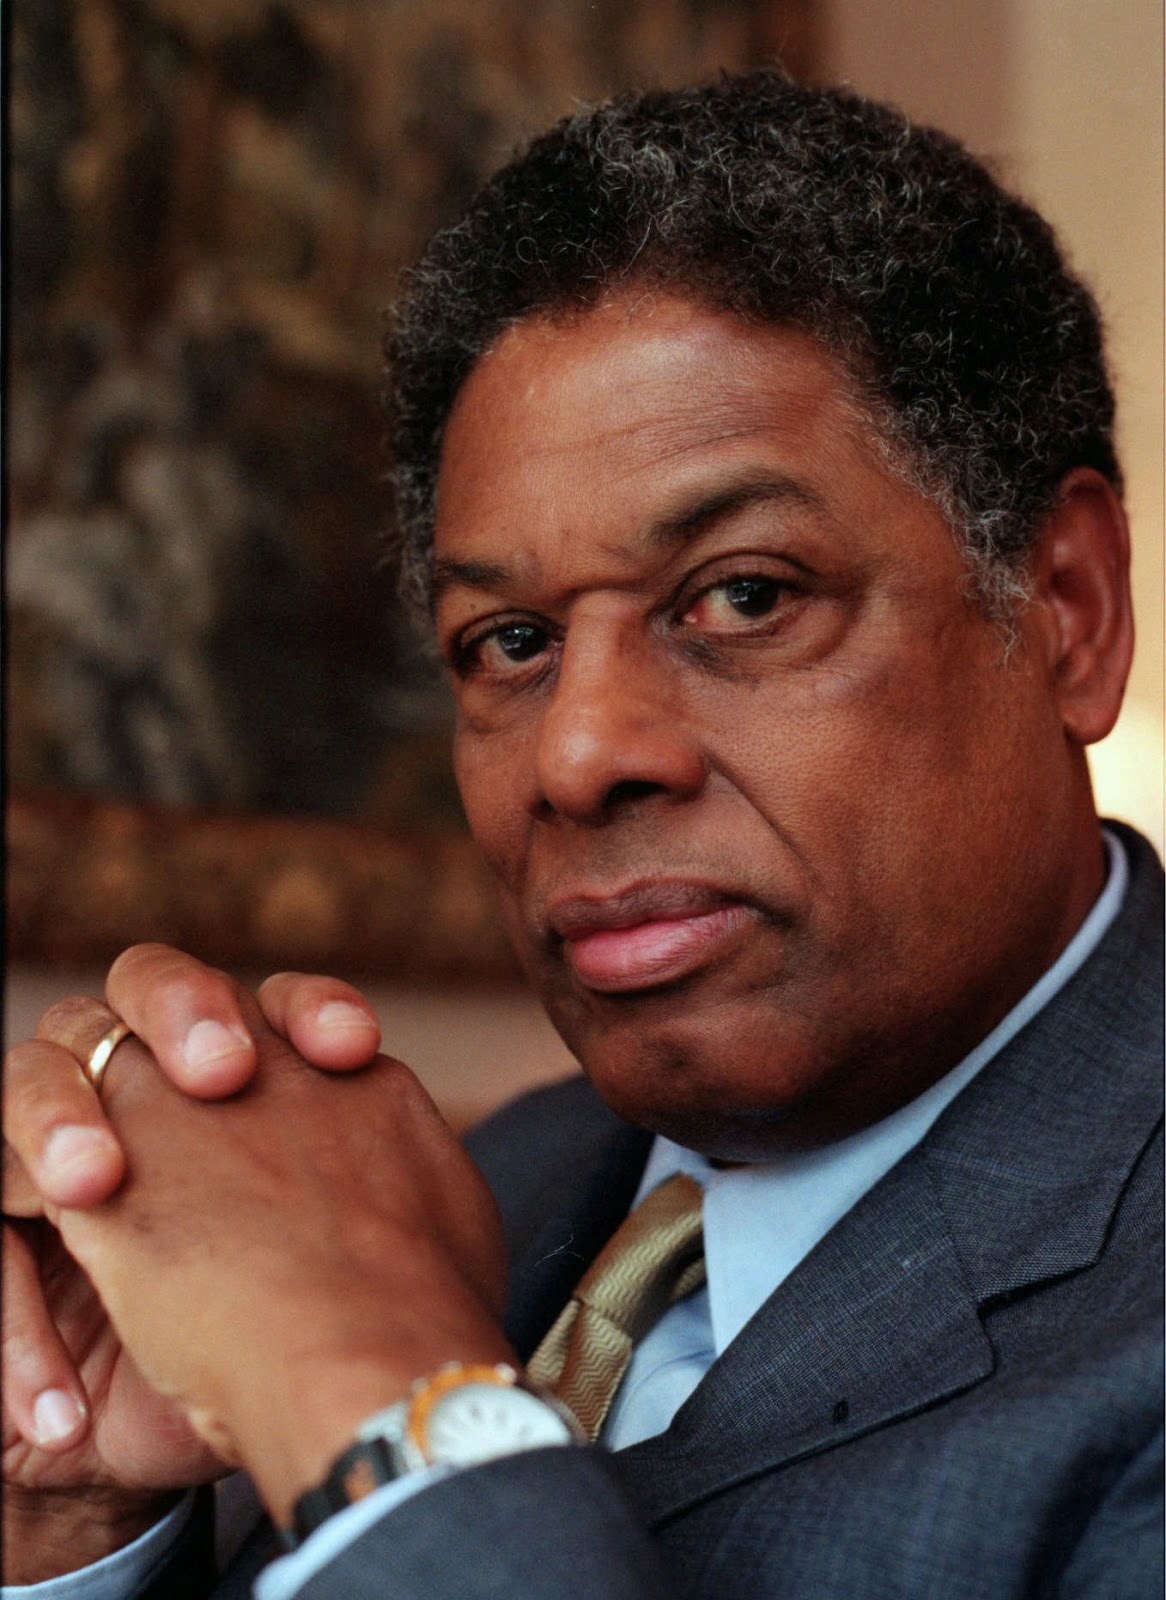 the black conservative thomas sowell what makes senator ted thomas sowell what makes senator ted cruz similar to president obama